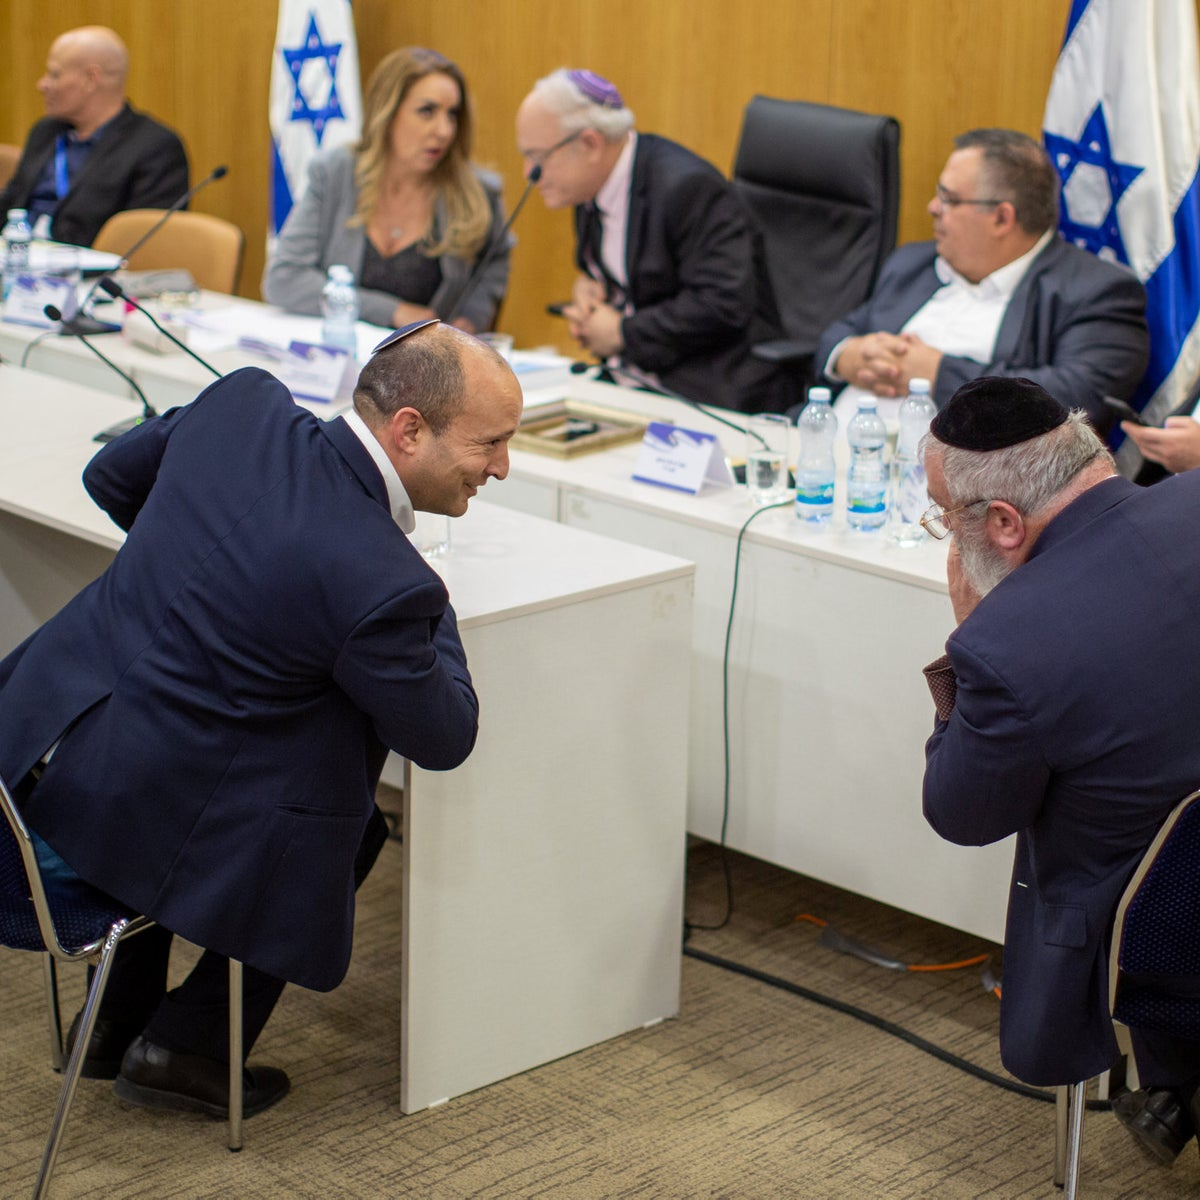 Israeli lawmakers gather on the day before the lists close, 2019.